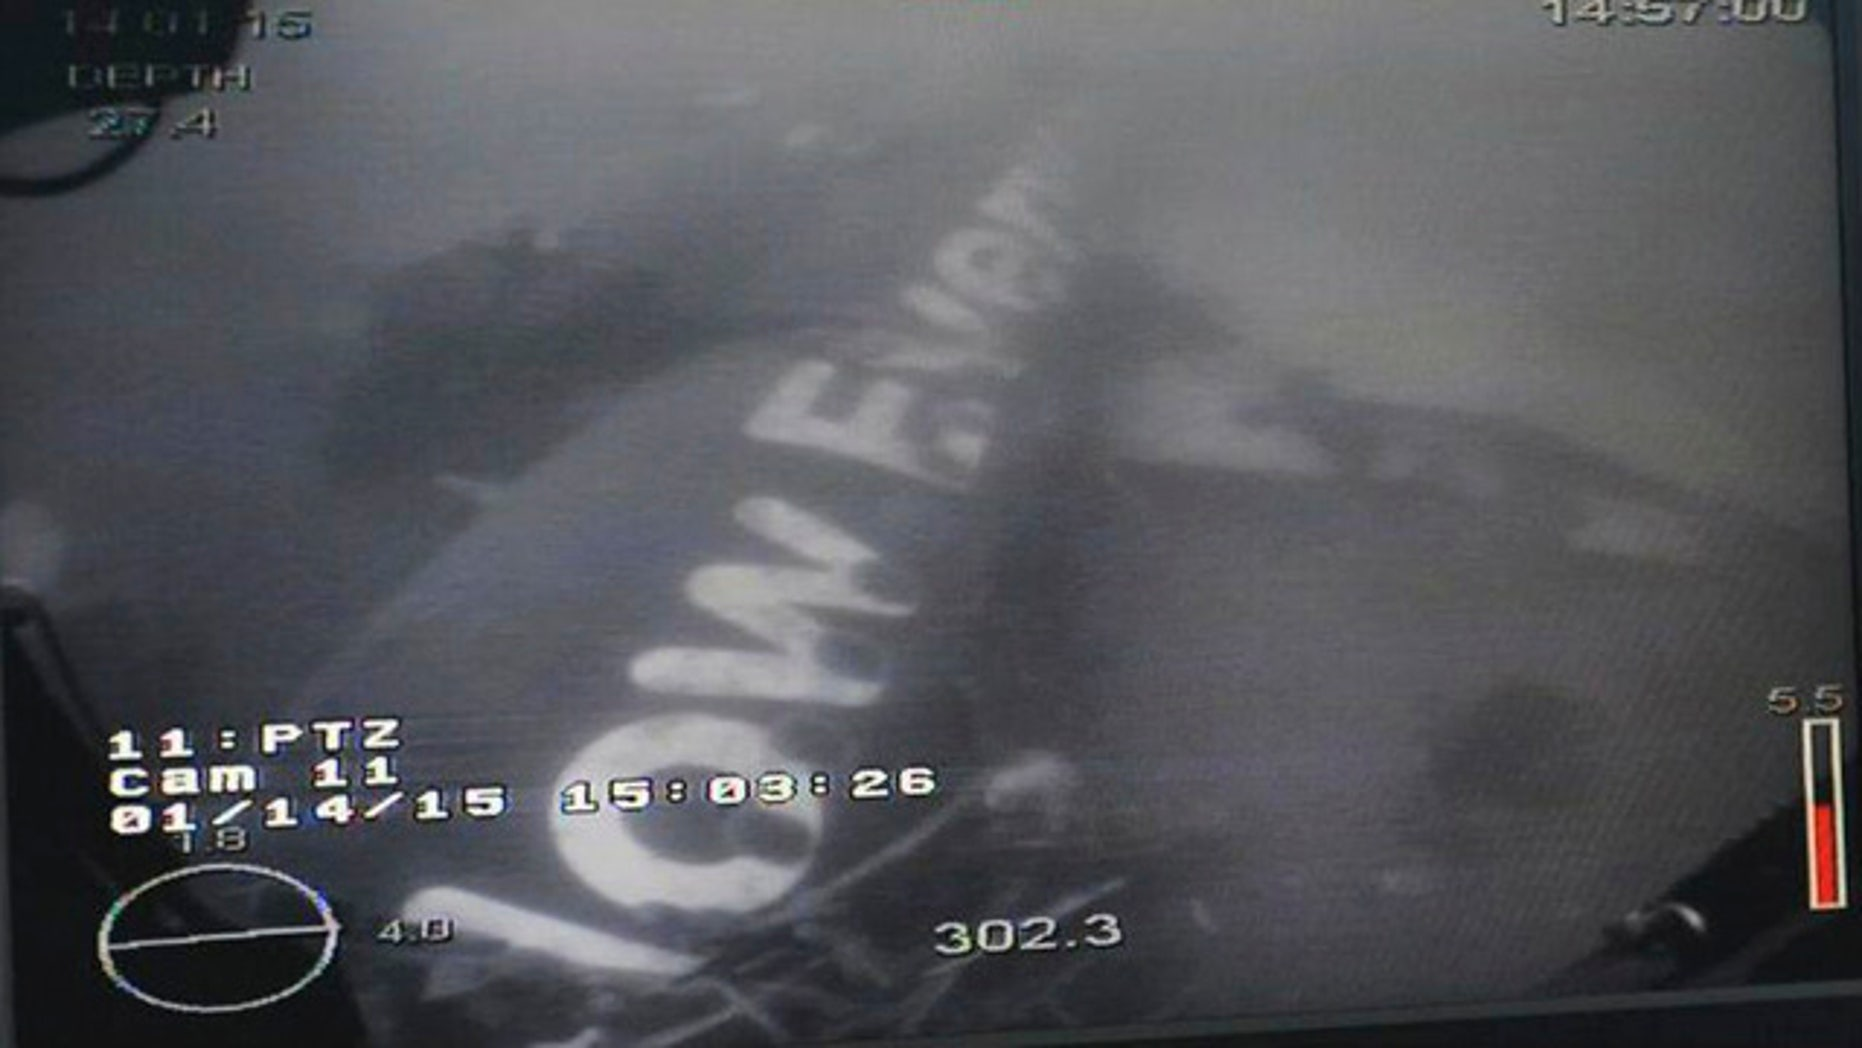 This undated underwater photo taken by a Remotely Operated Vehicle (ROV) and released by the Singapore Ministry of Defense (MINDEF) shows the wreckage of AirAsia Flight QZ 8501 lying on the sea floor in the Java Sea. (AP Photo/MINDEF)